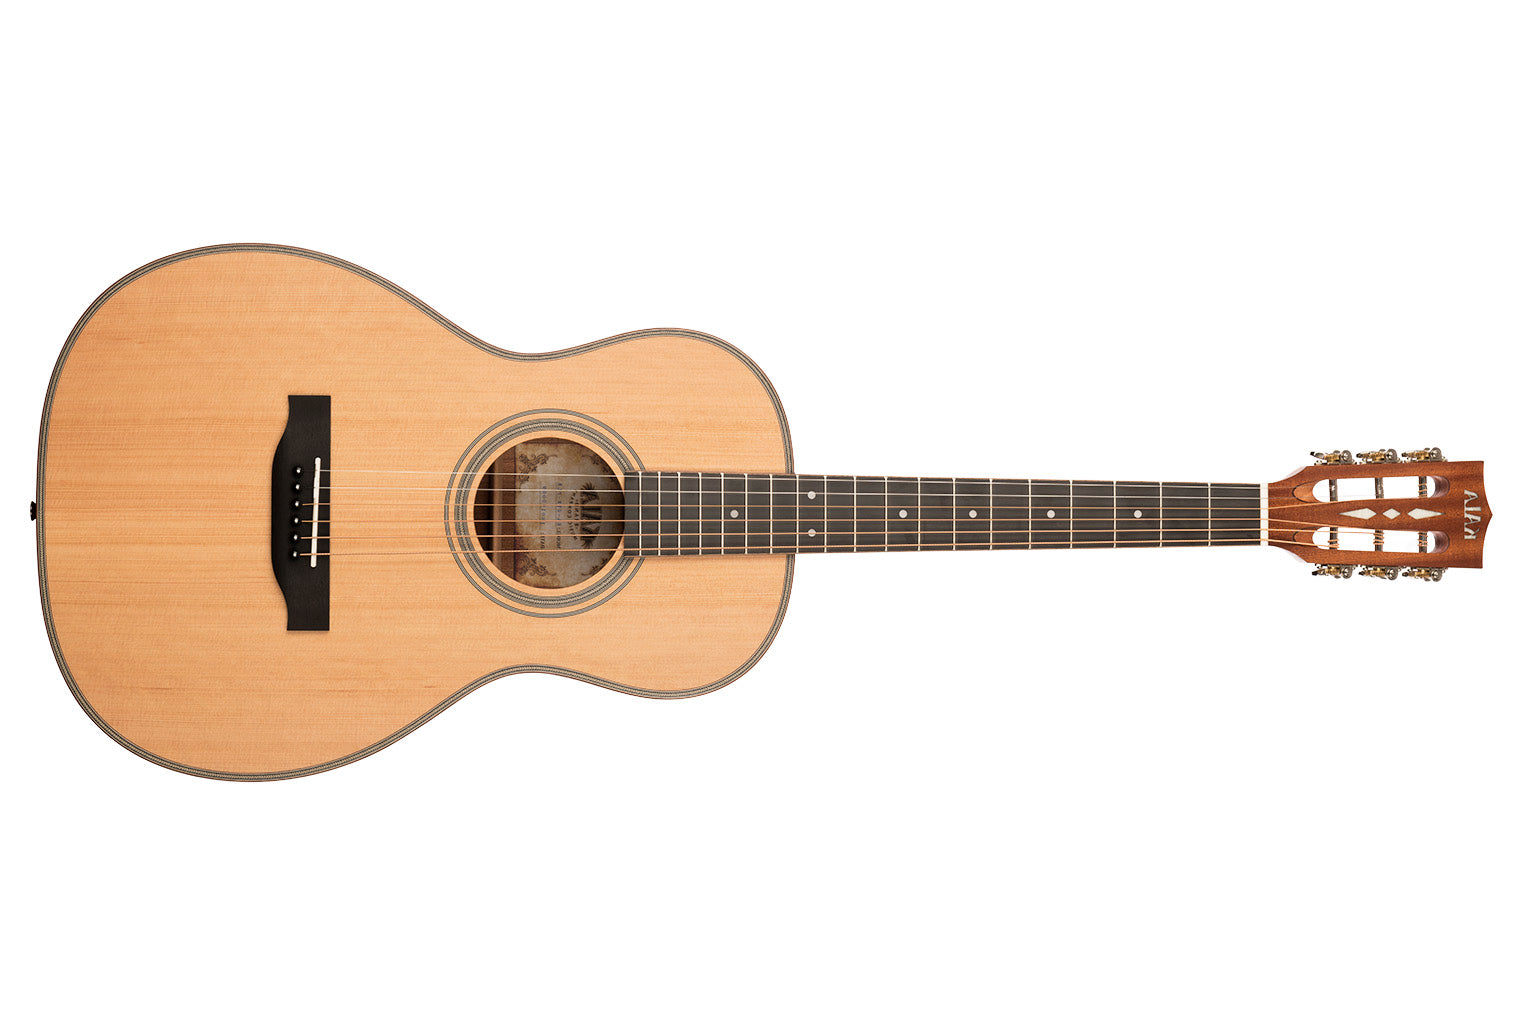 The Parlor Guitar